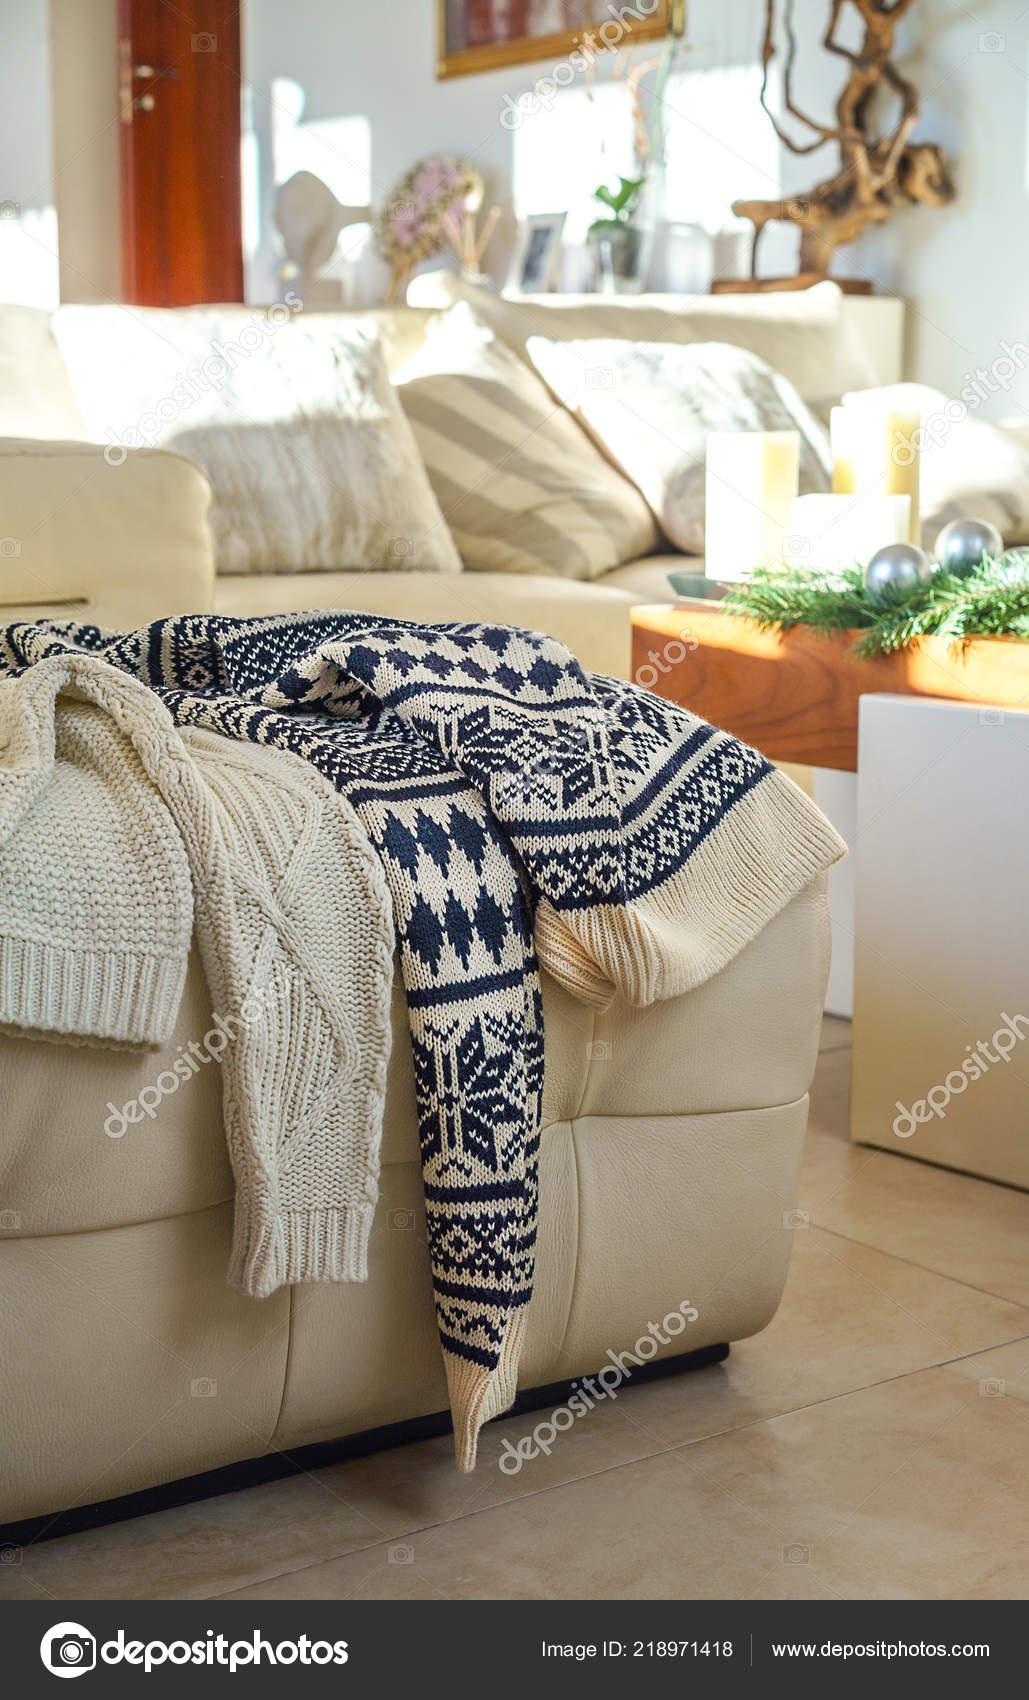 Tremendous Warm Winter Knitted Sweaters Two People Dropped On Sofa Gmtry Best Dining Table And Chair Ideas Images Gmtryco